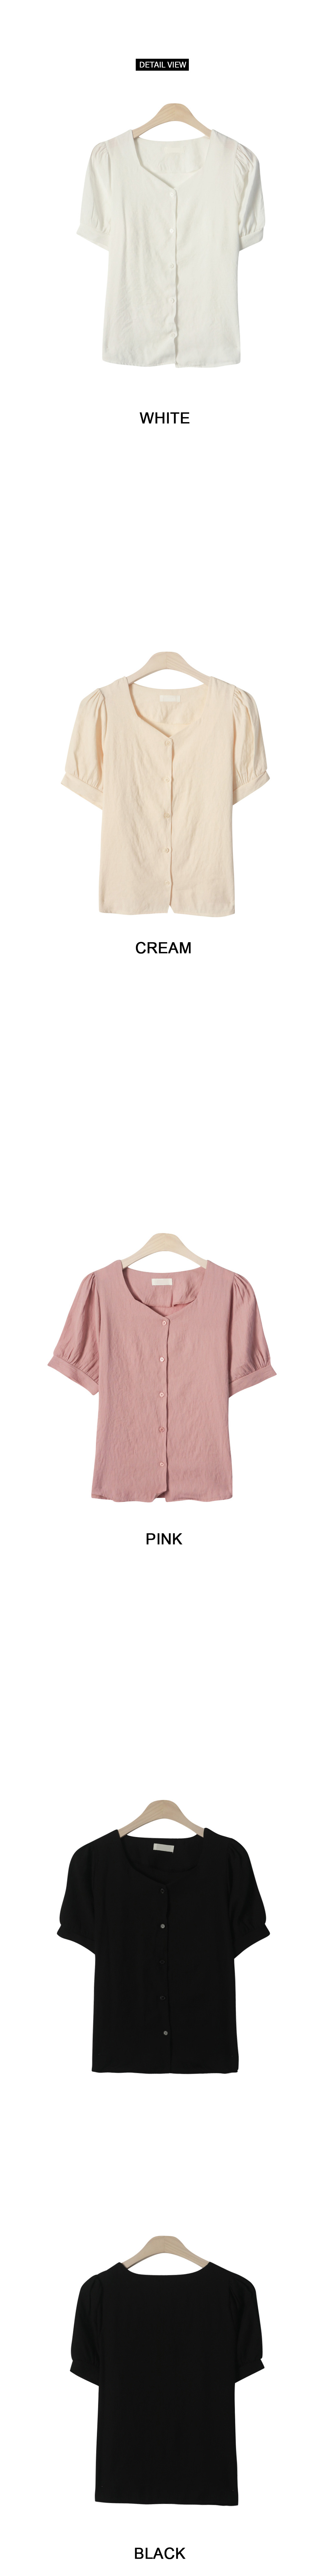 Ronnie Square Blouse